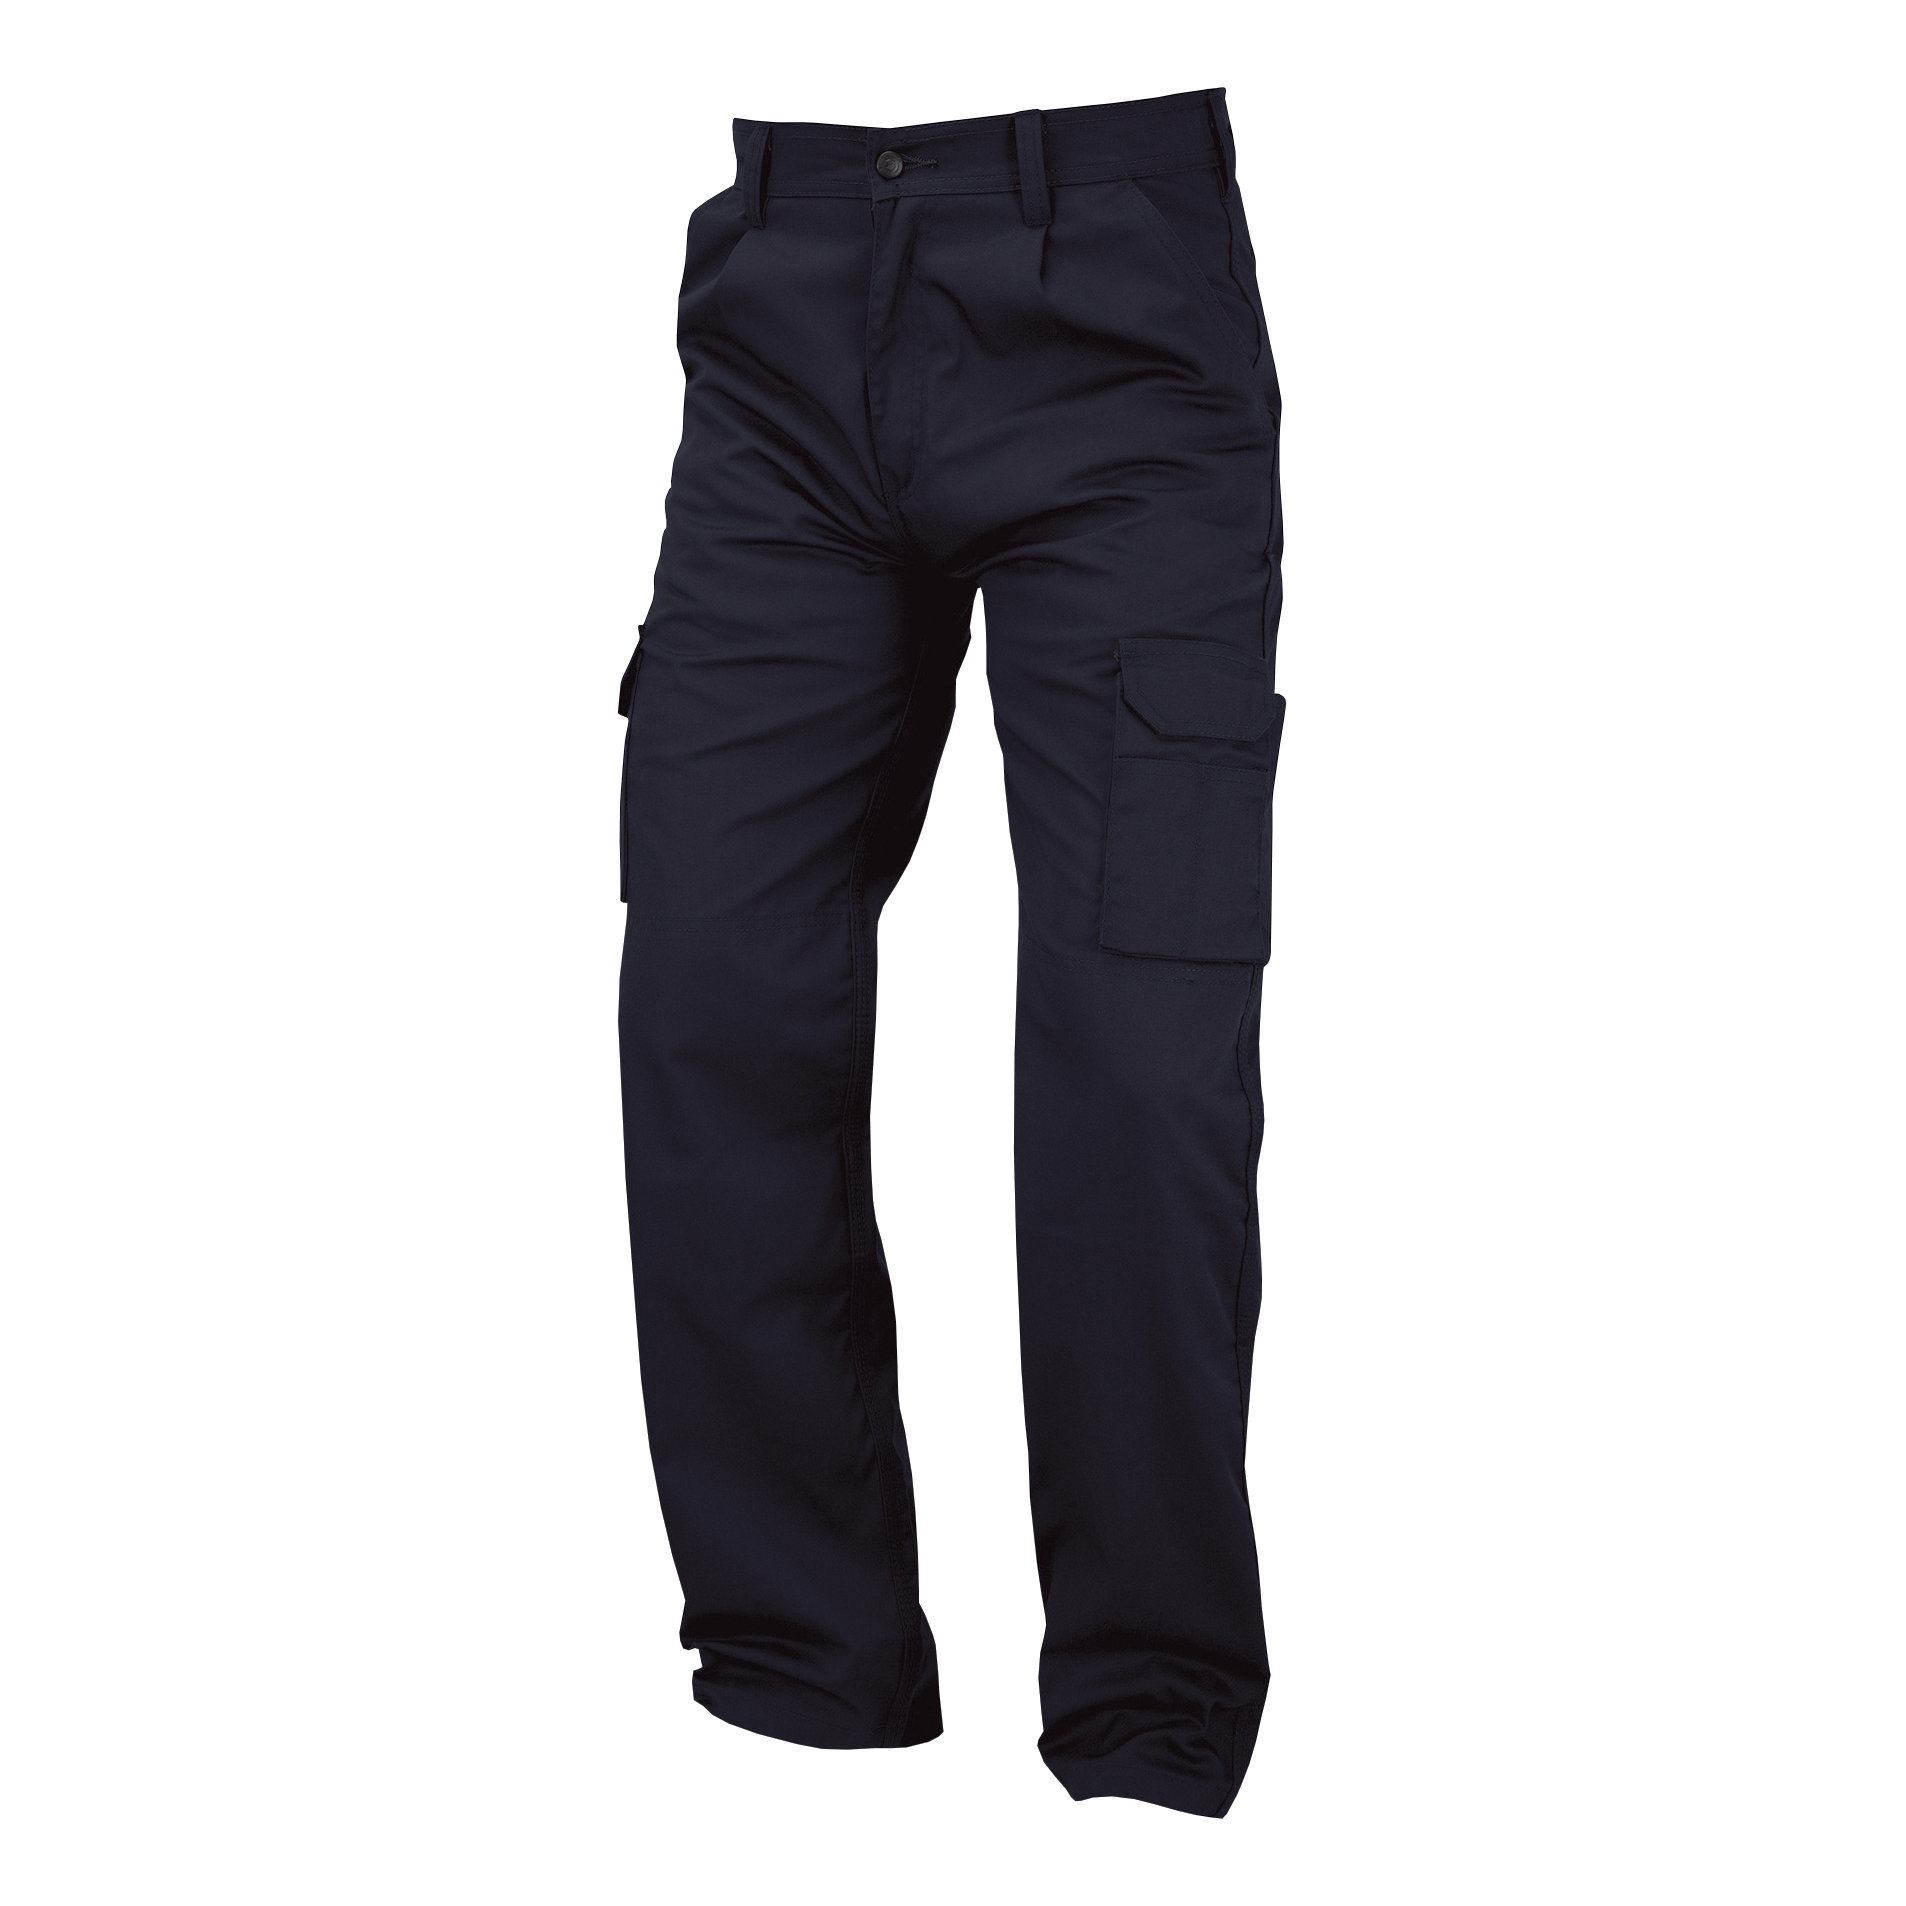 Combat Trousers Multifunctional 46in Long Navy Blue Ref PCTHWN46T *Approx 3 Day Leadtime*